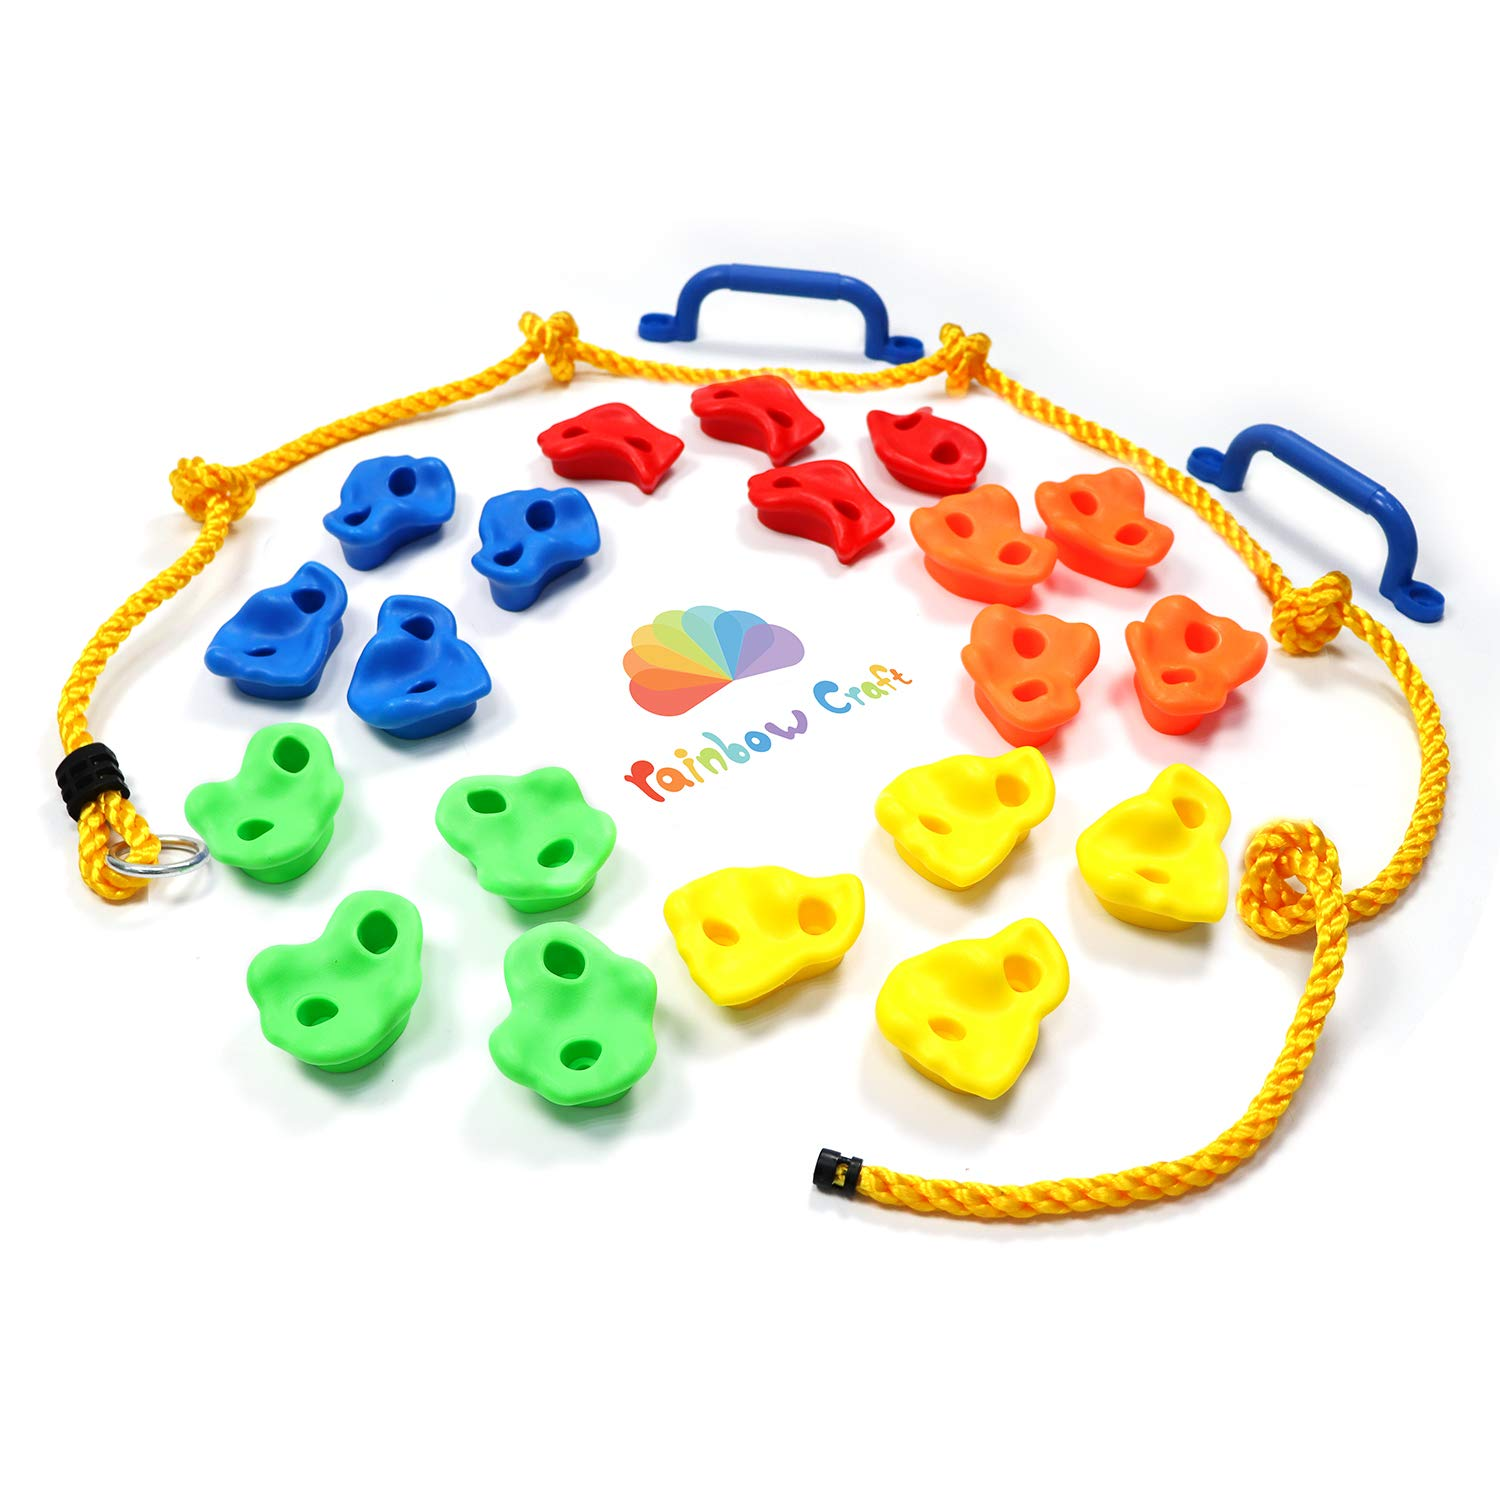 Rainbow Craft DIY Monkey Rock Climbing Holds Set Buddles of 20Pc with 2Pc Handles and 8Ft Knotted Rope for Kids Outdoor Play Includes Mounting Screws and Hooks by Rainbow Craft